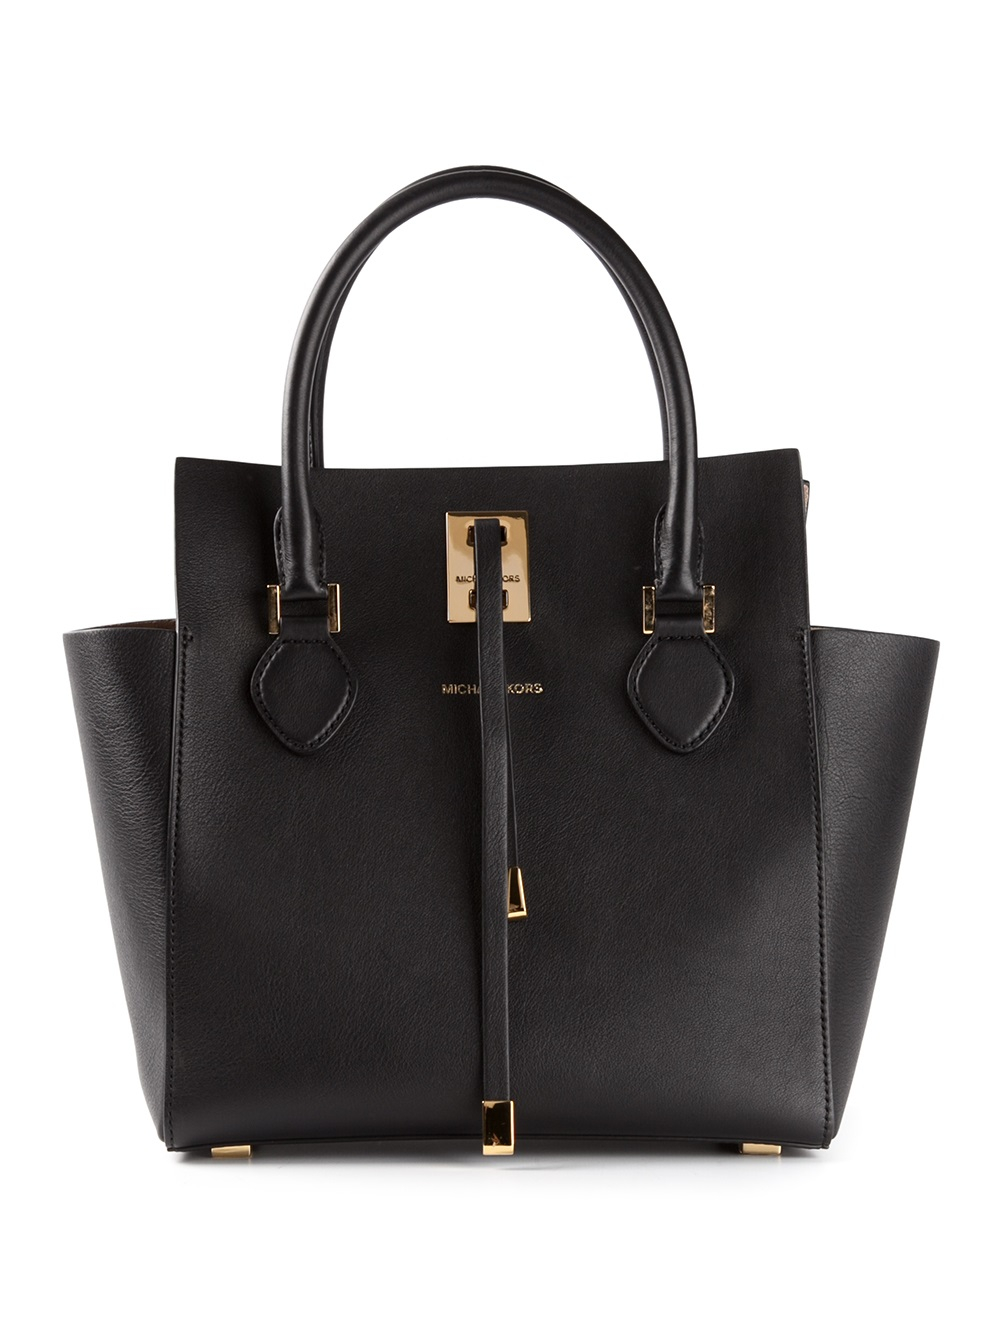 1bef396acfbd Gallery. Previously sold at: Farfetch · Women's Trapeze Bags Women's Michael  By Michael Kors Miranda